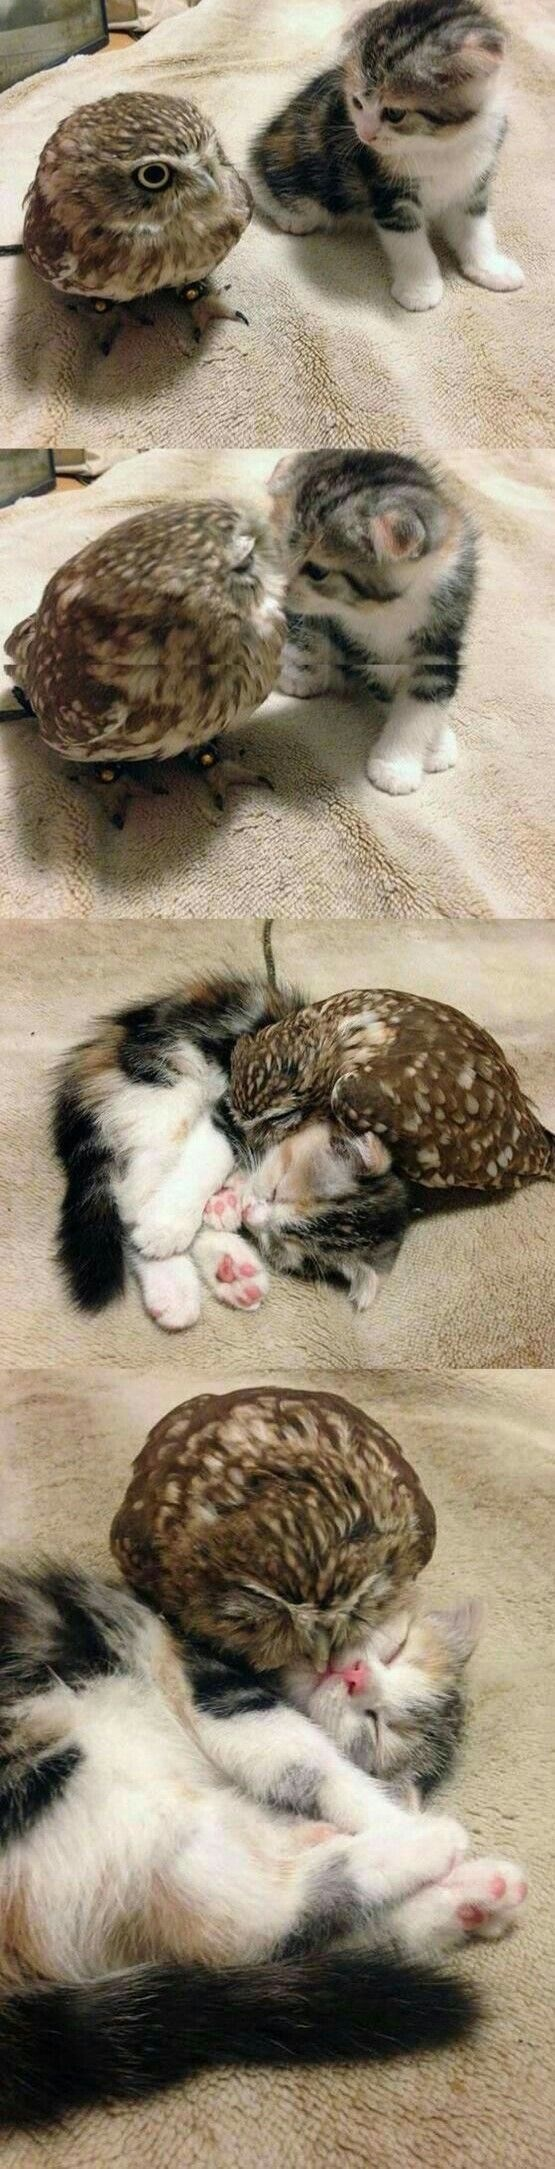 aww,kitten,Owl,cuddles